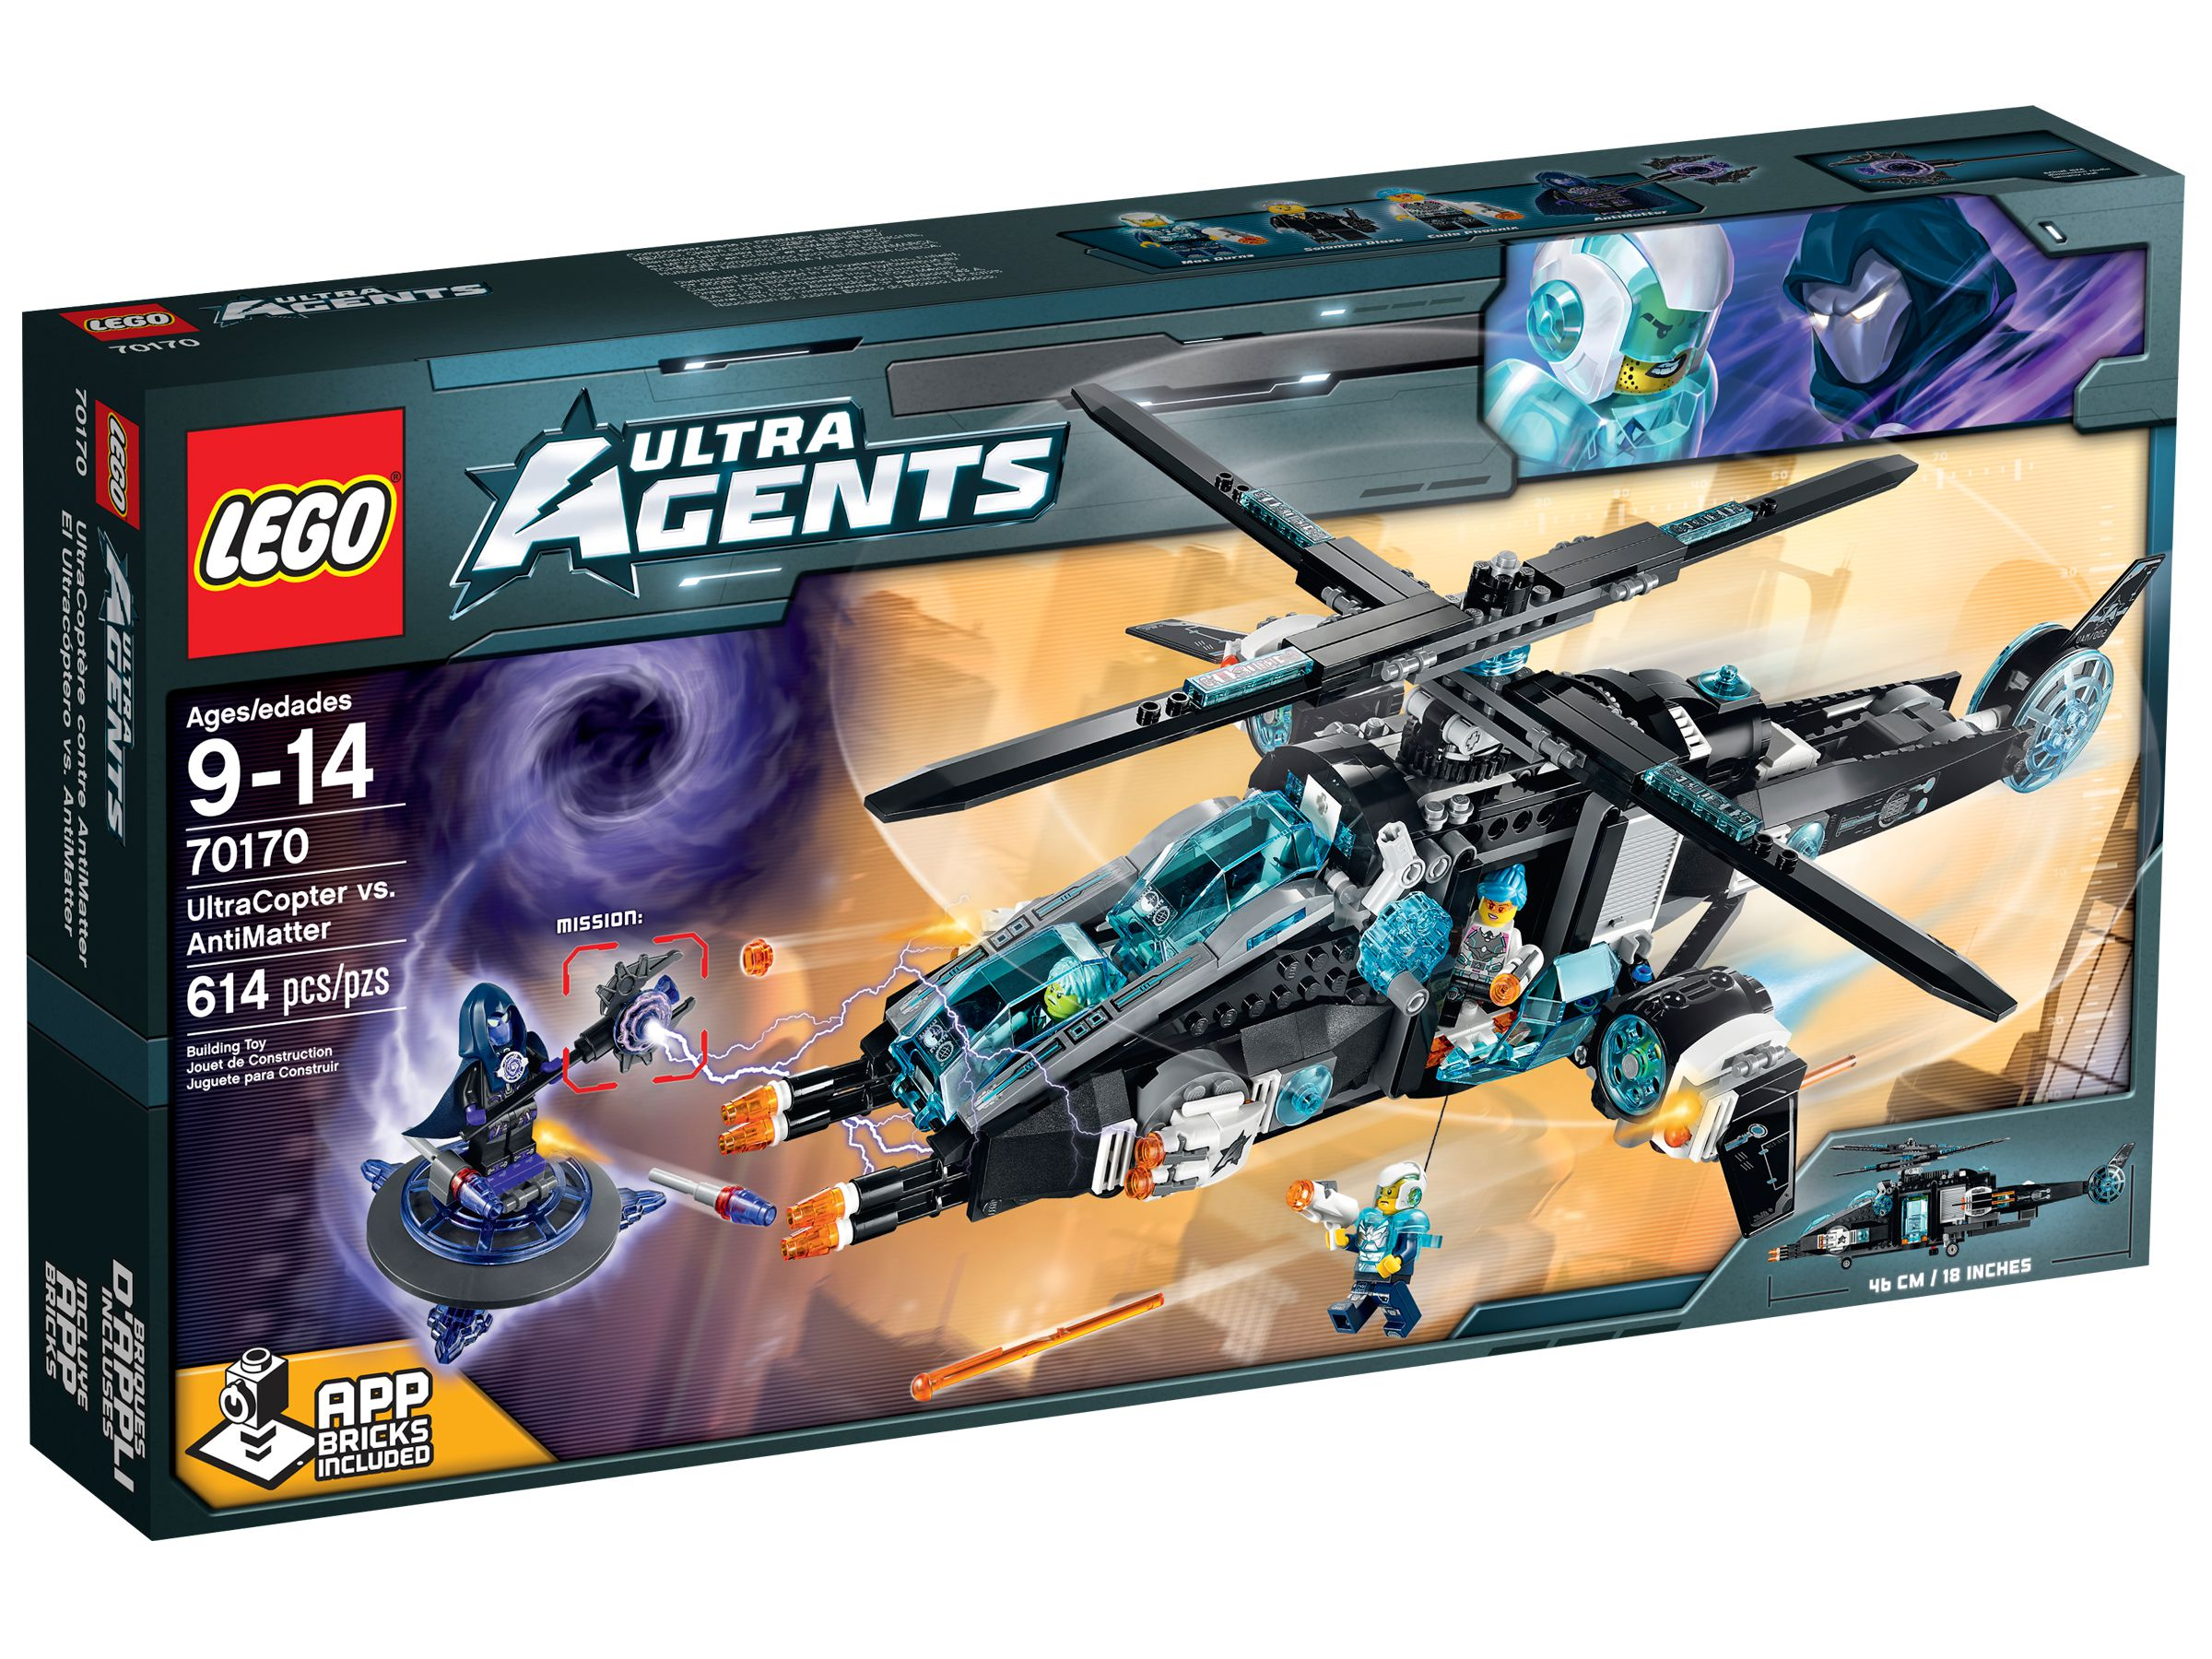 LEGO Agents 70170 UltraCopter vs. AntiMatter LEGO_70170_alt1.jpg